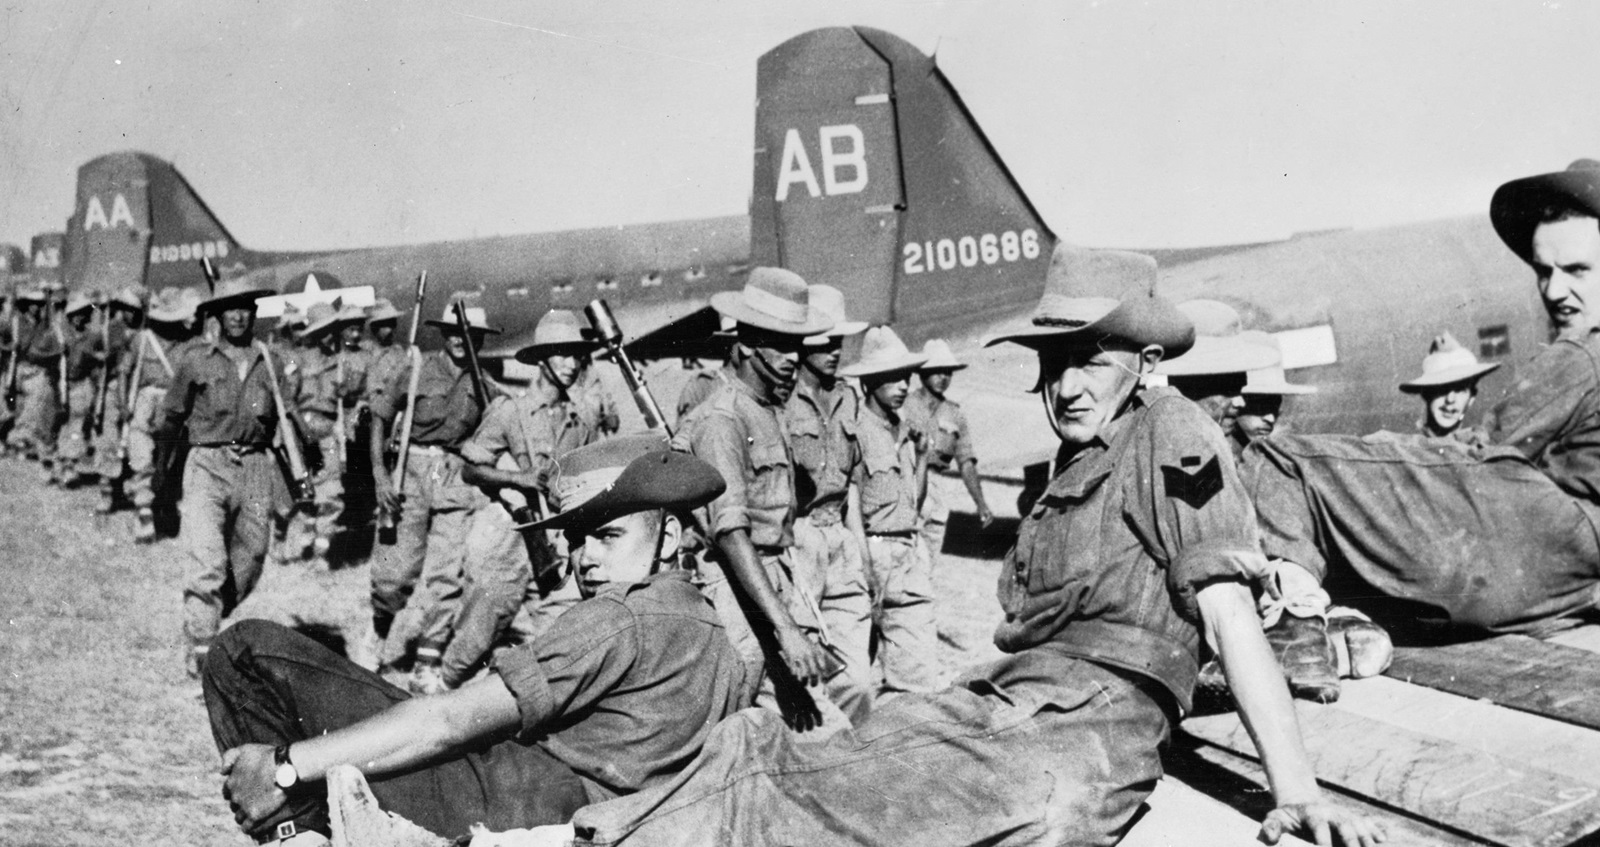 Chindits. British, West African and Gurkha soldiers waiting at an airfield in India before Operation 'Thursday' March 1944 (IWM 020832)